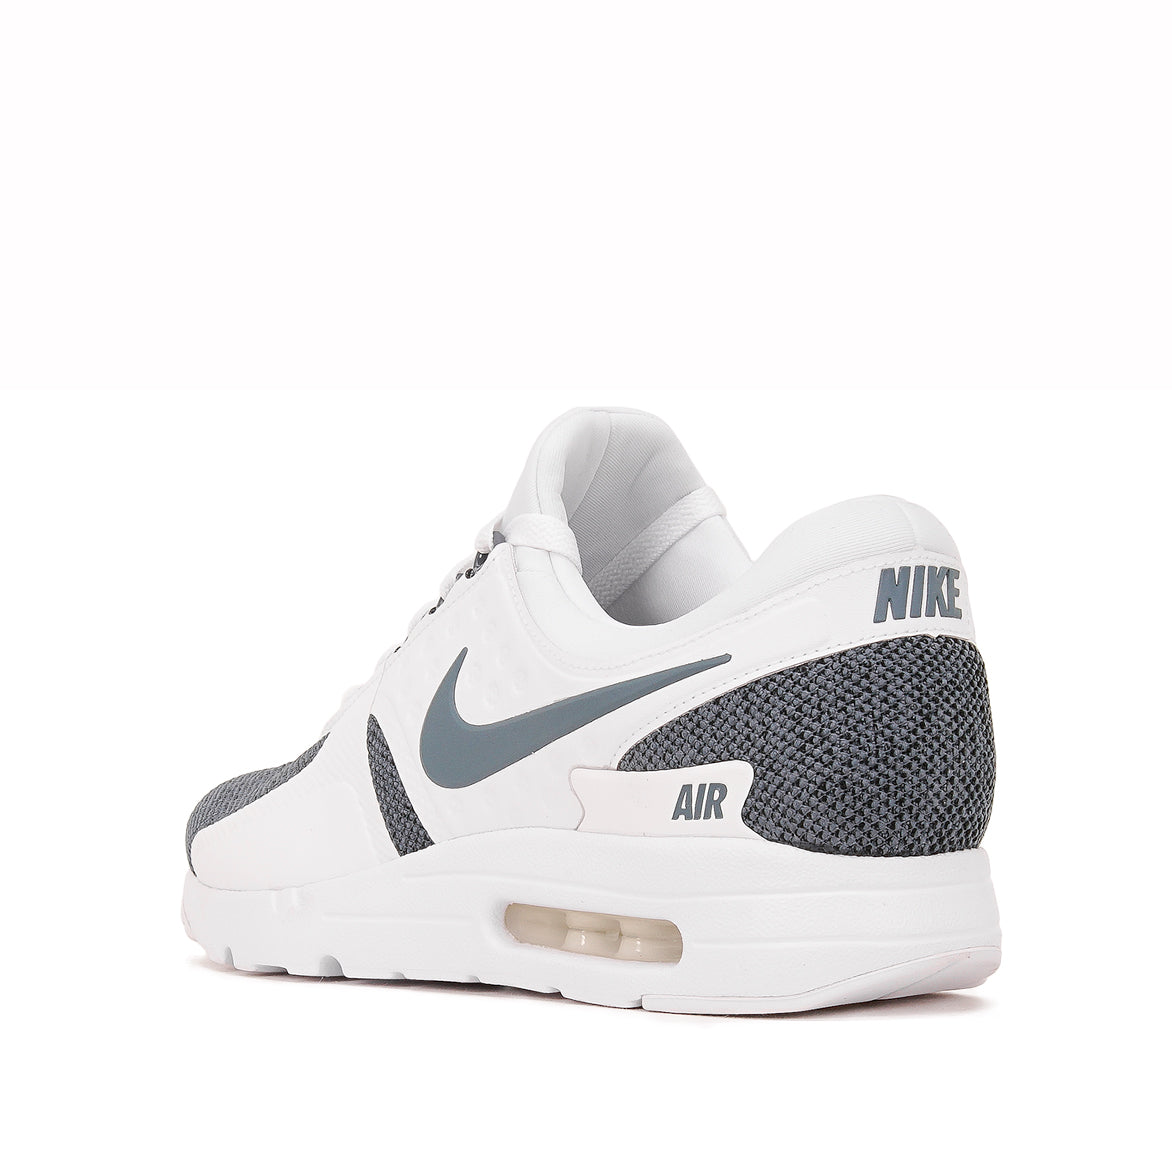 AIR MAX ZERO PREMIUM - WHITE / ARMORY BLUE